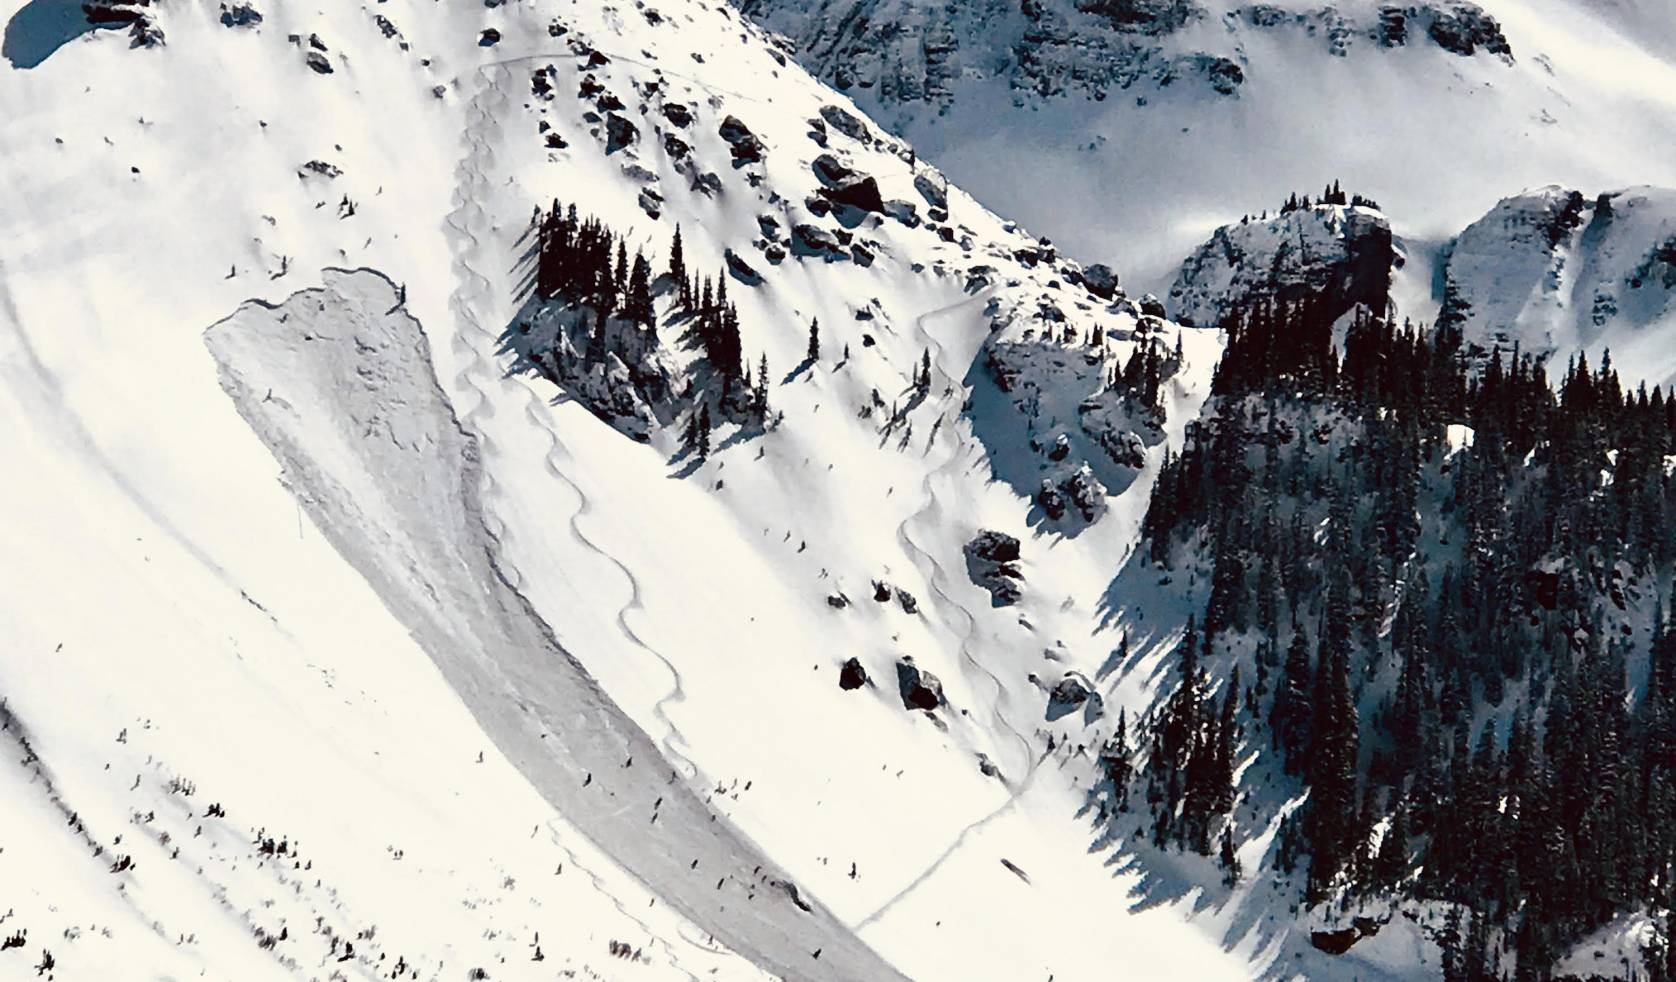 s-lines created by skiers with avalanche path